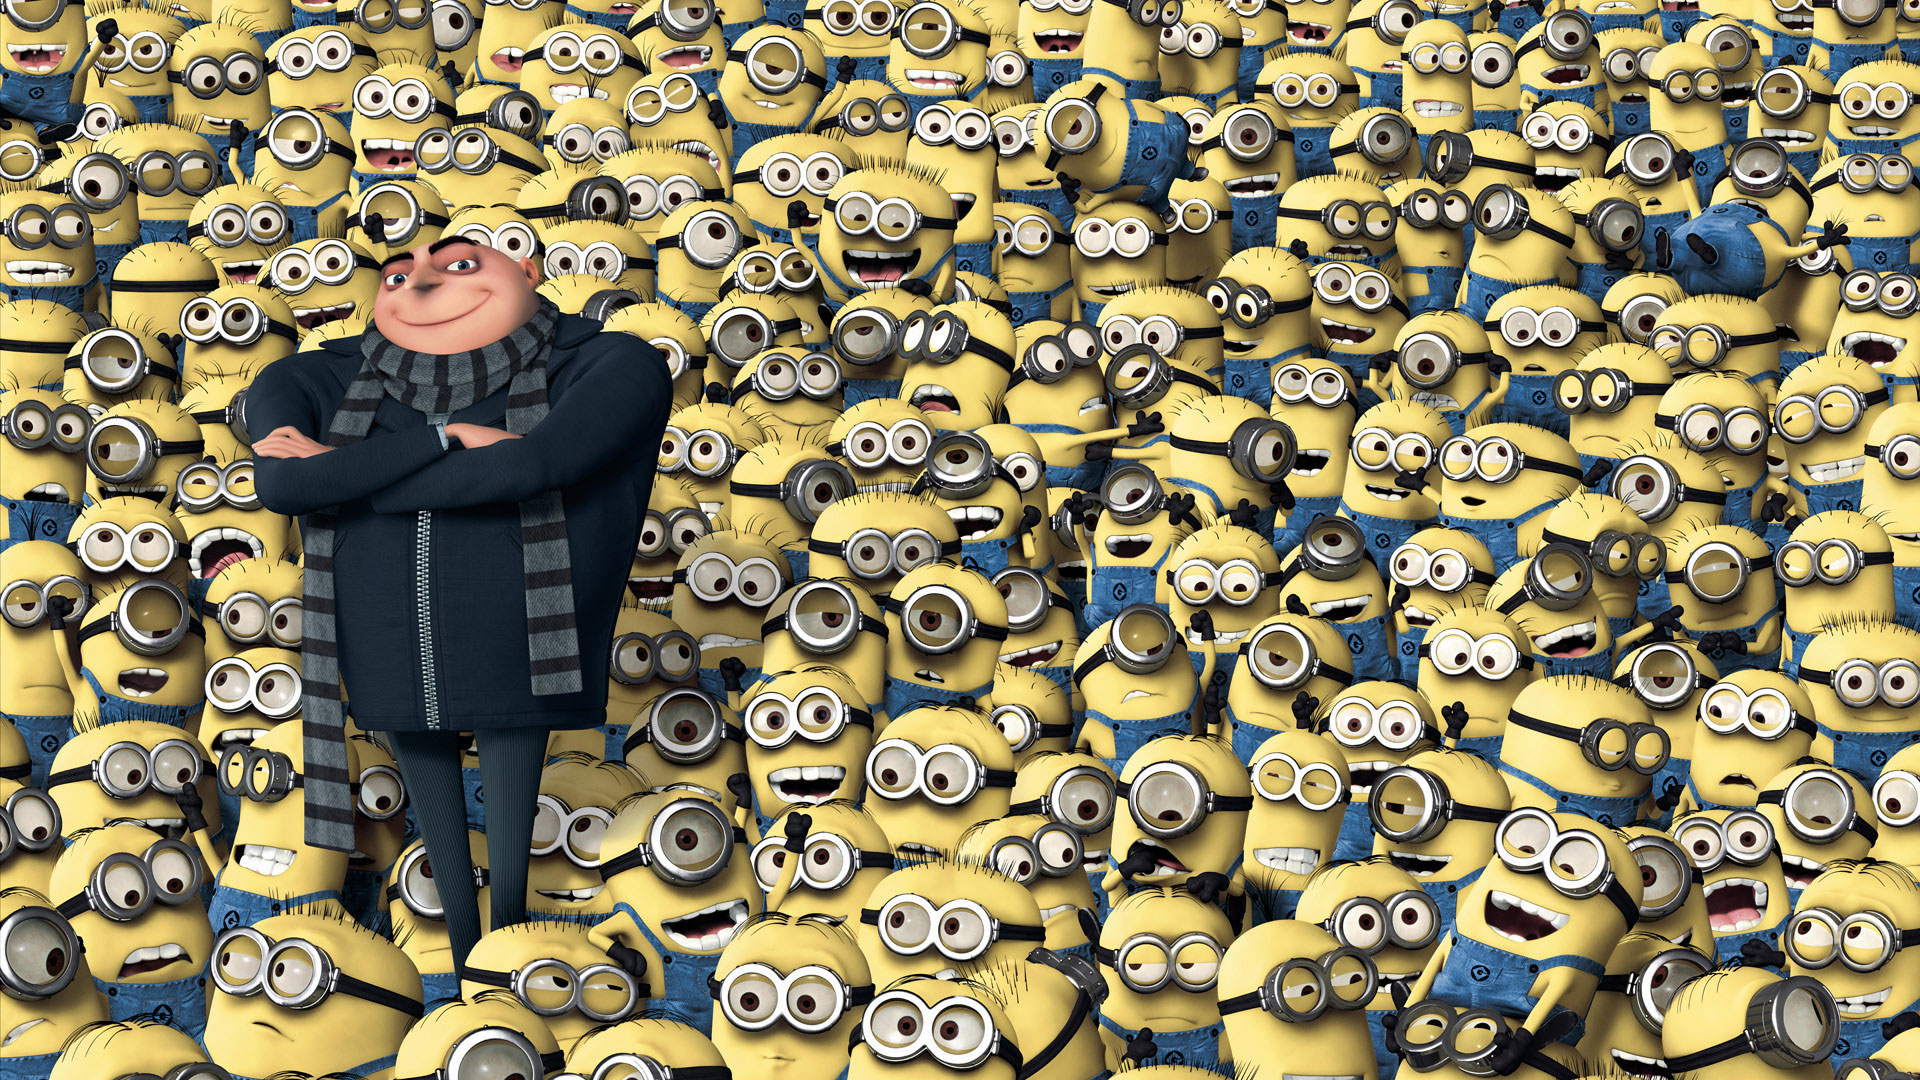 Image despicable me 2 minions pictures wallpaper hd1 1 g despicable me 2 minions pictures wallpaper hd1 1 g voltagebd Gallery